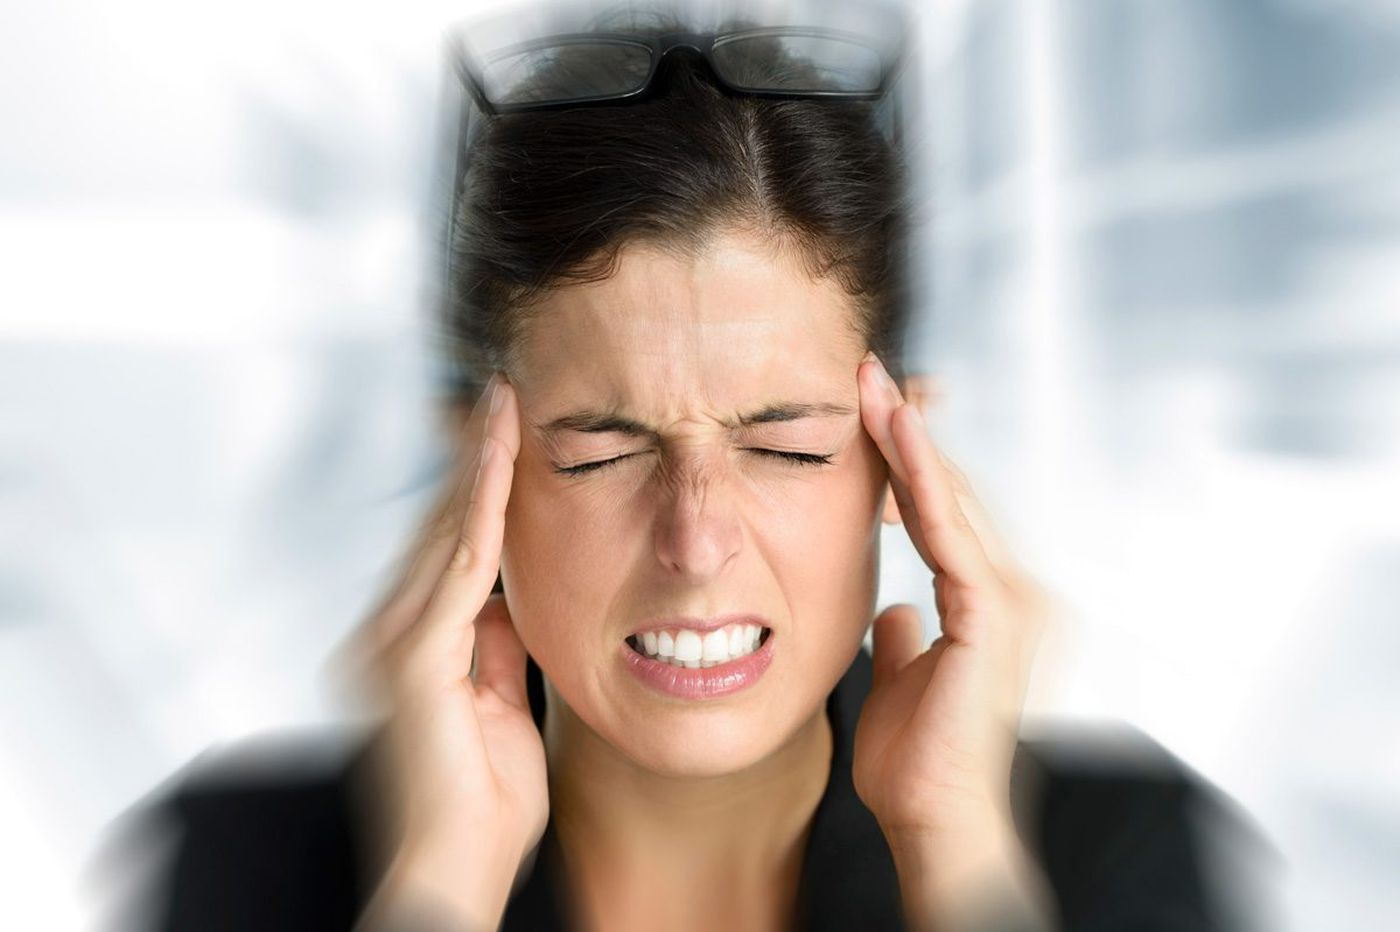 Q&A: Common triggers for migraines